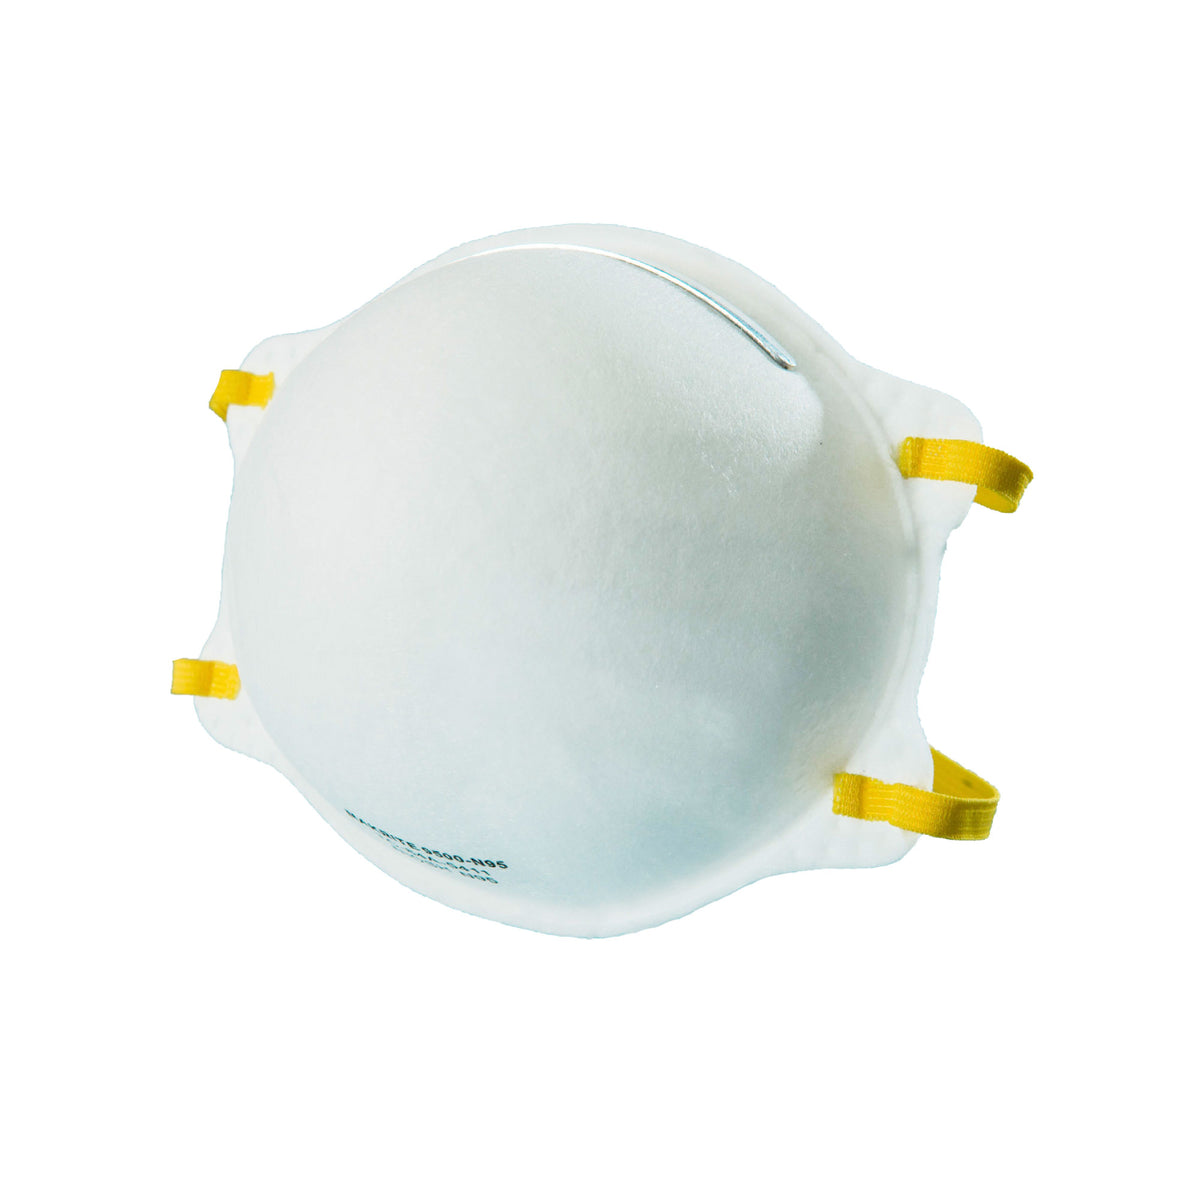 NIOSH Certified Makrite N95 Pre-formed Respirator Masks (240 pcs)